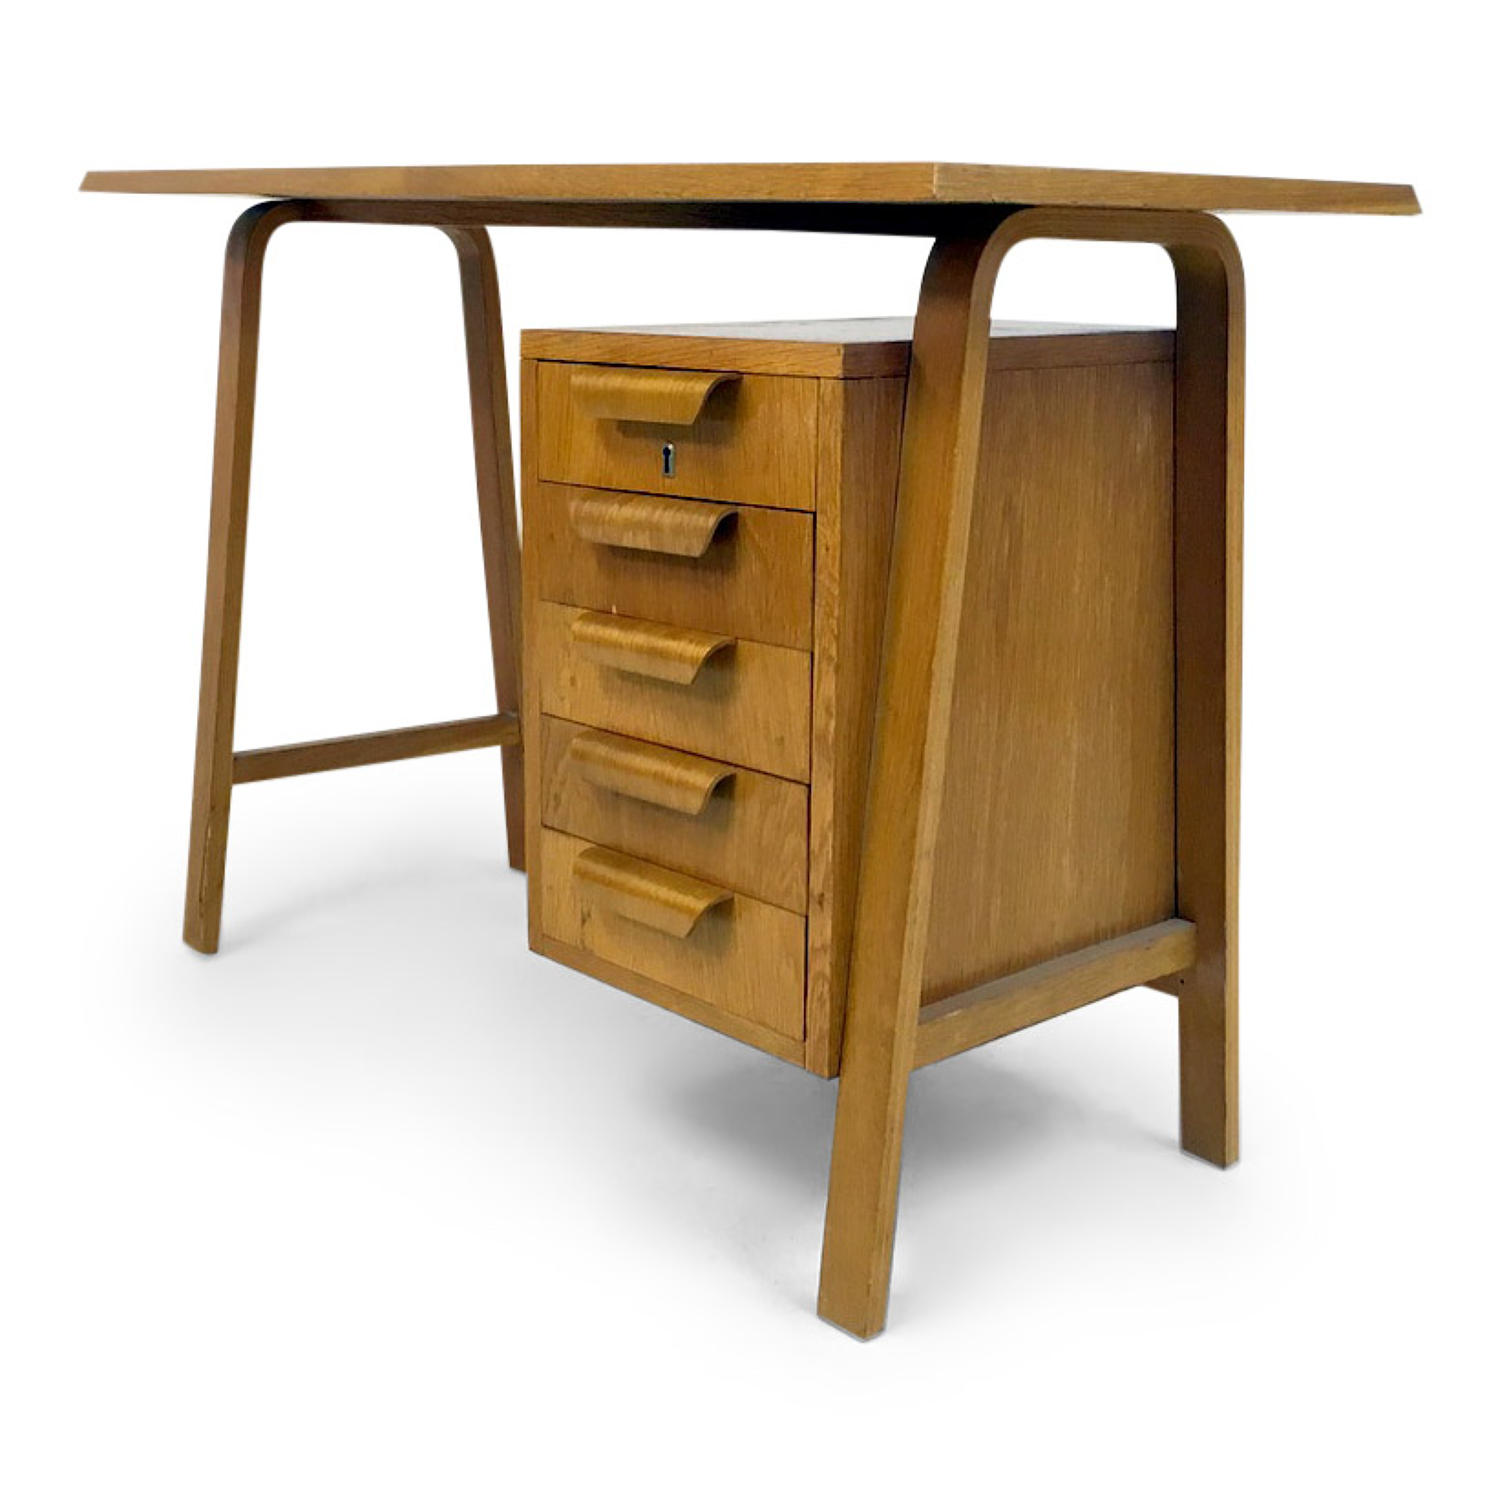 Small 1950s bentwood desk